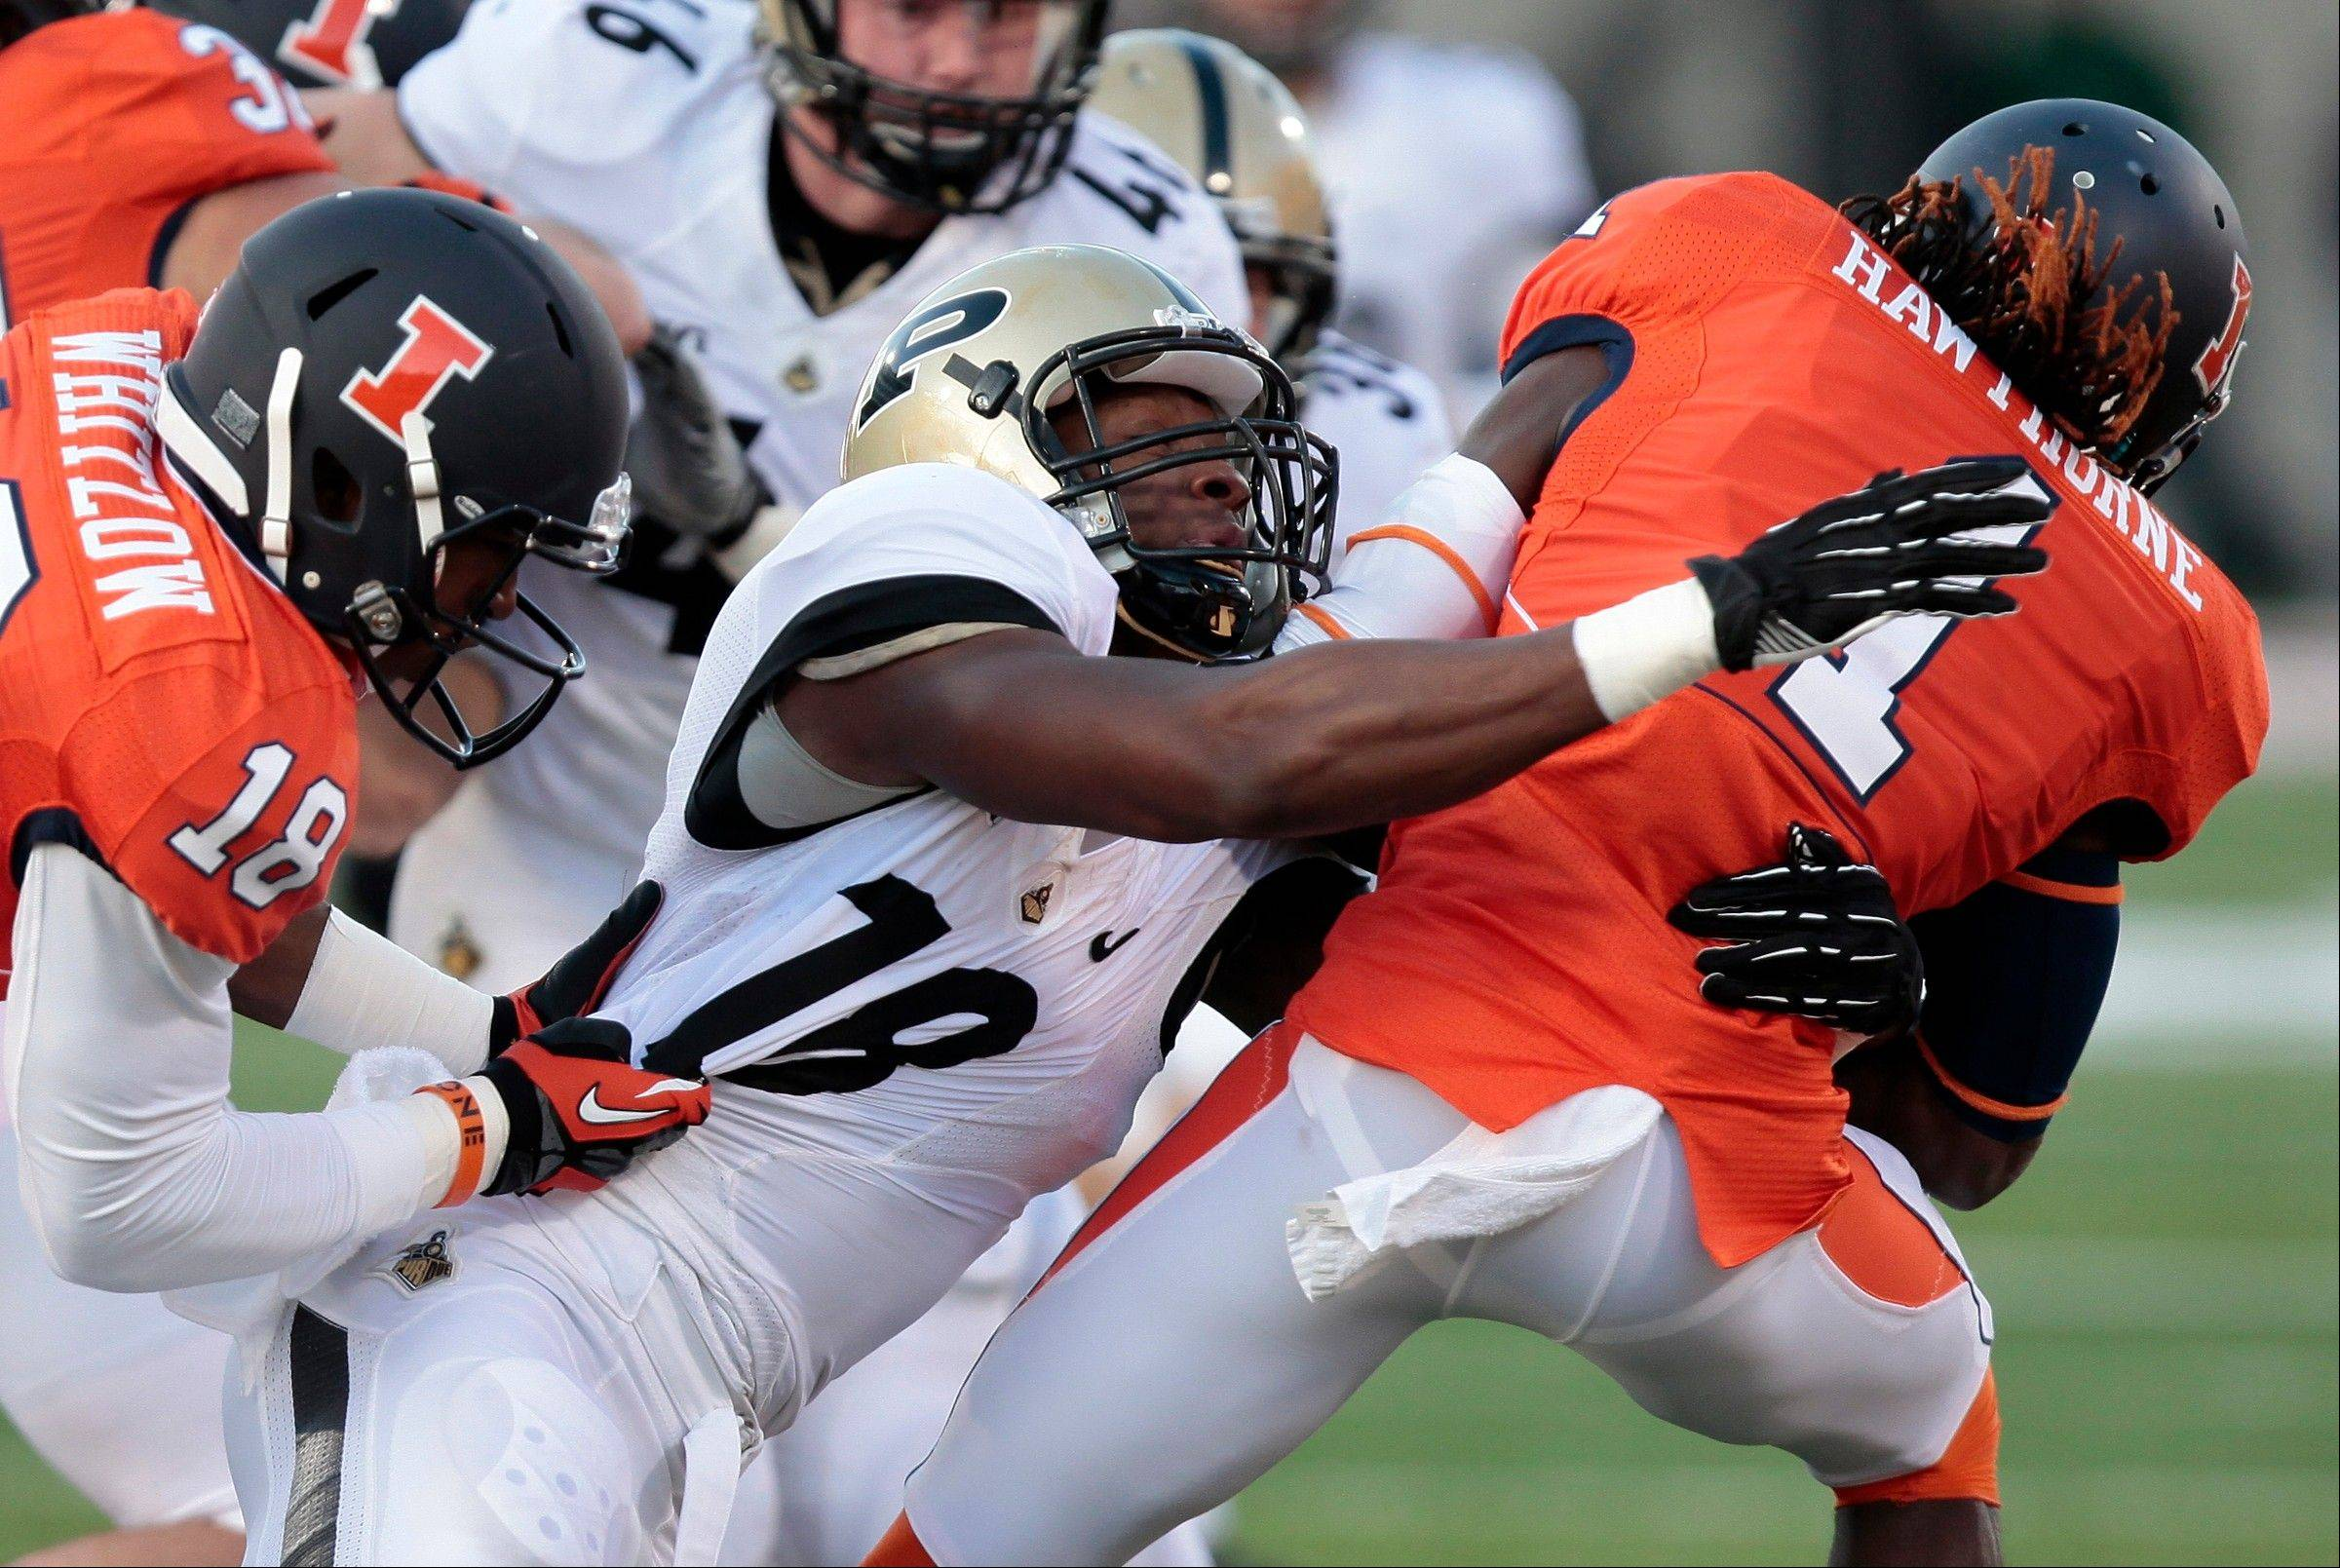 Purdue's Nnamdi Ezenwa (18) tackles Illinois' Terry Hawthorne (1) during the first half of an NCAA college football game on Saturday, Nov. 17, 2012, in Champaign, Ill. (AP Photo/Stephen Haas)